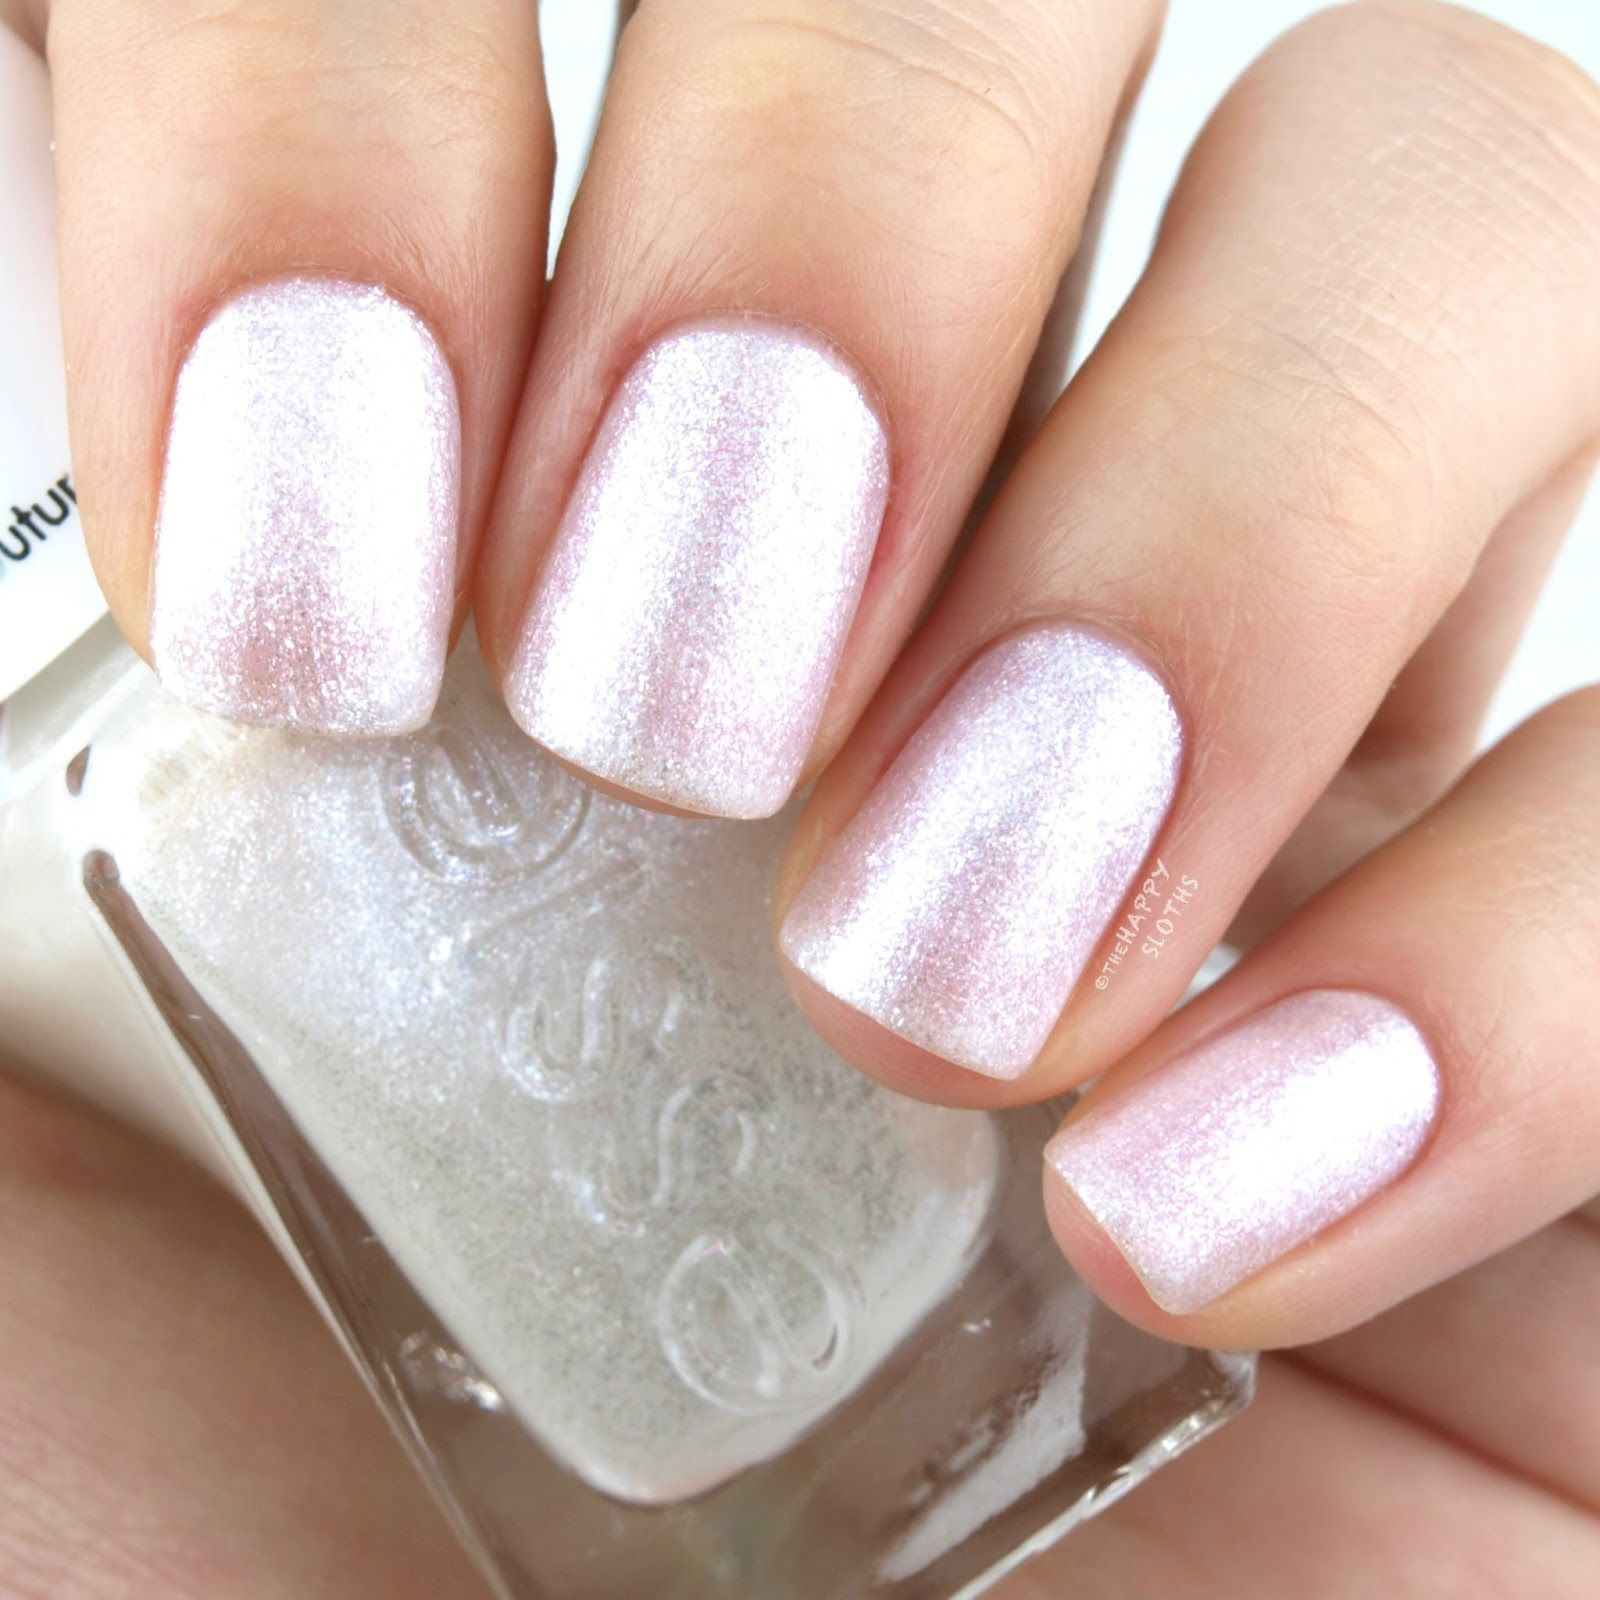 Bridal Gel Nail Polish: Essie Gel Couture Bridal 2017 Collection: Review And